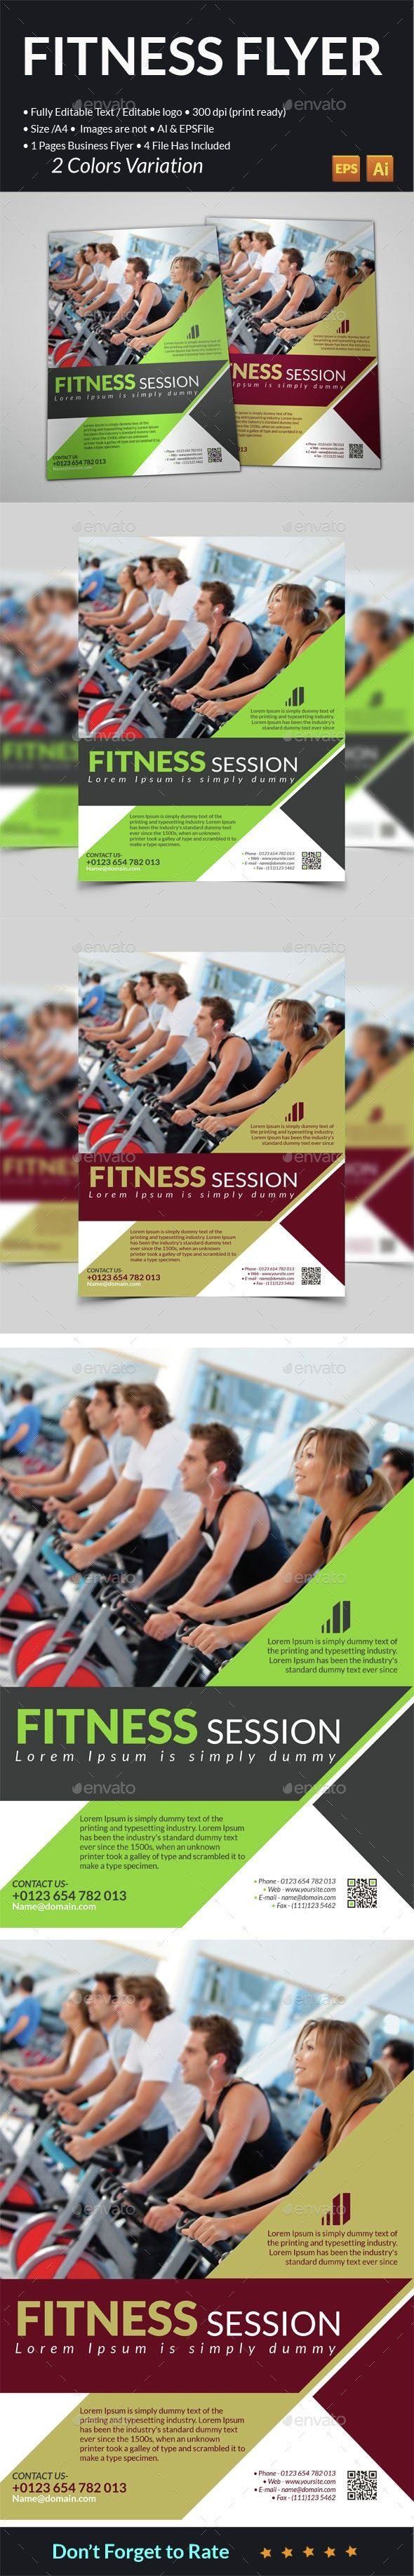 Fitness Club Flyer #AD #Fitness, #SPONSORED, #Club, #Flyer